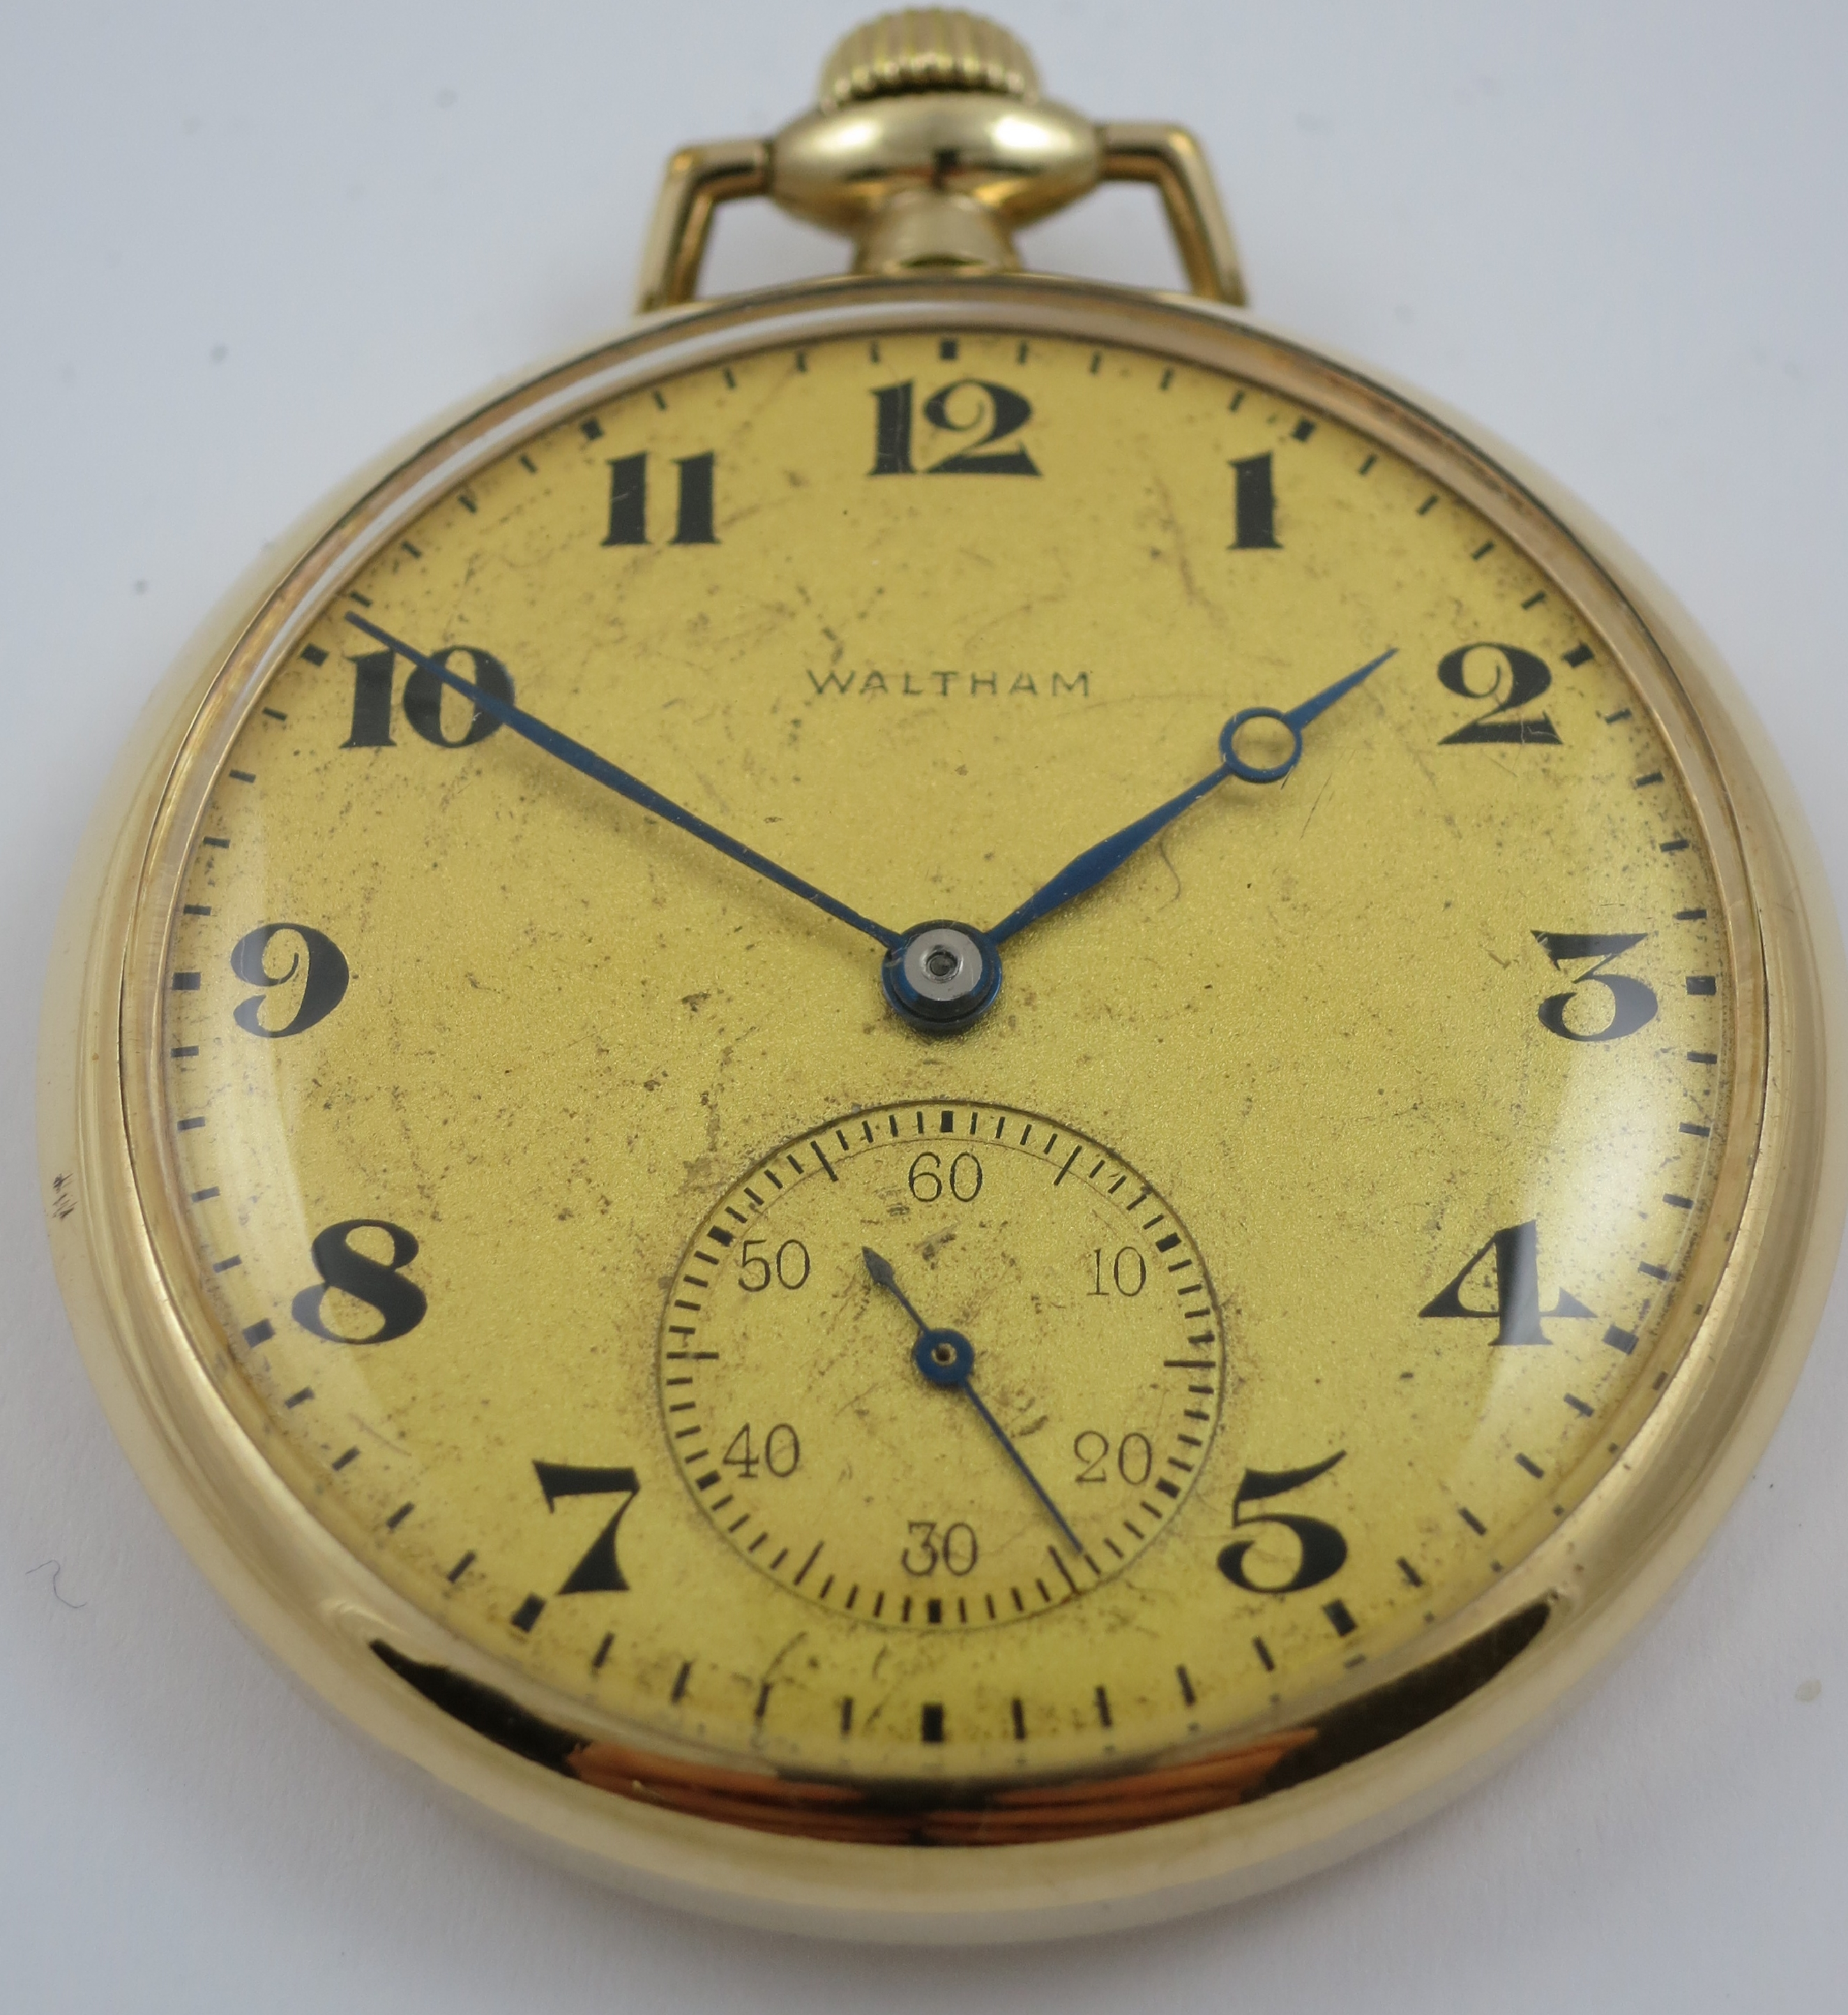 CIRCA 1920`S WALTHAM GOLD PLATED MECHANICAL OPEN FACE POCKET WATCH